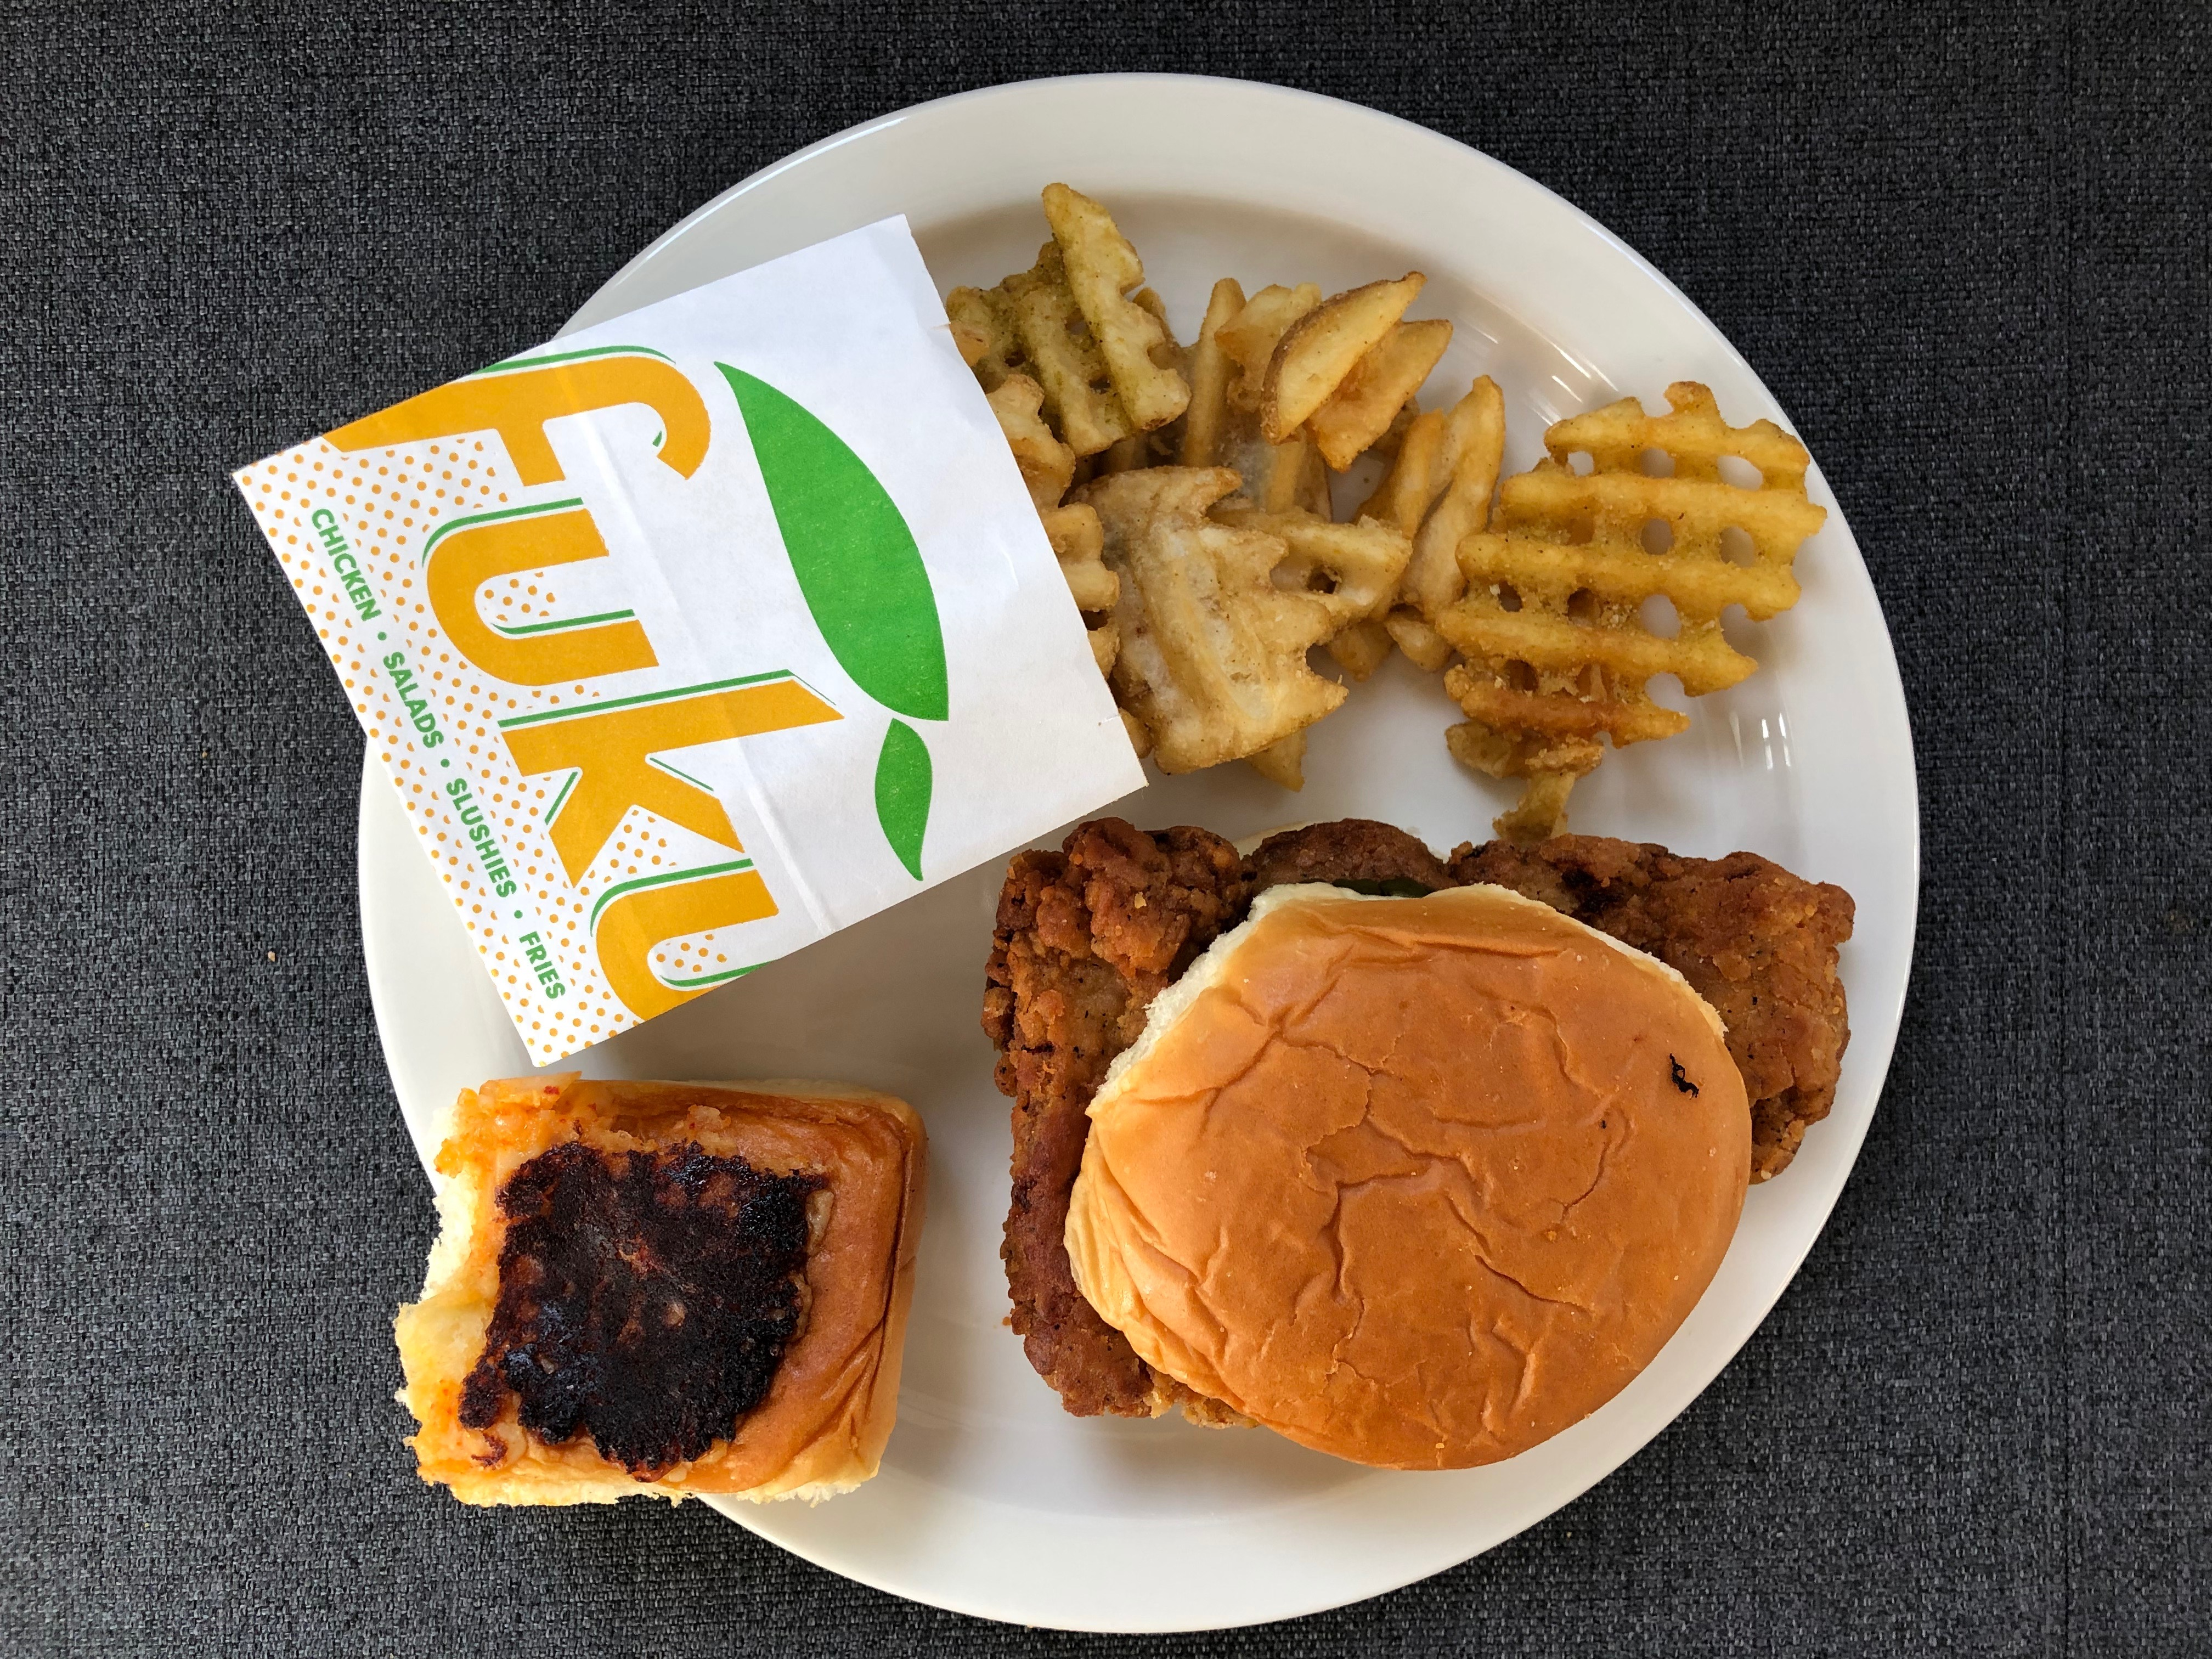 A paper plate with a fried chicken sandwich, cheese bread, and waffle fries inside a Fuku-branded carton.